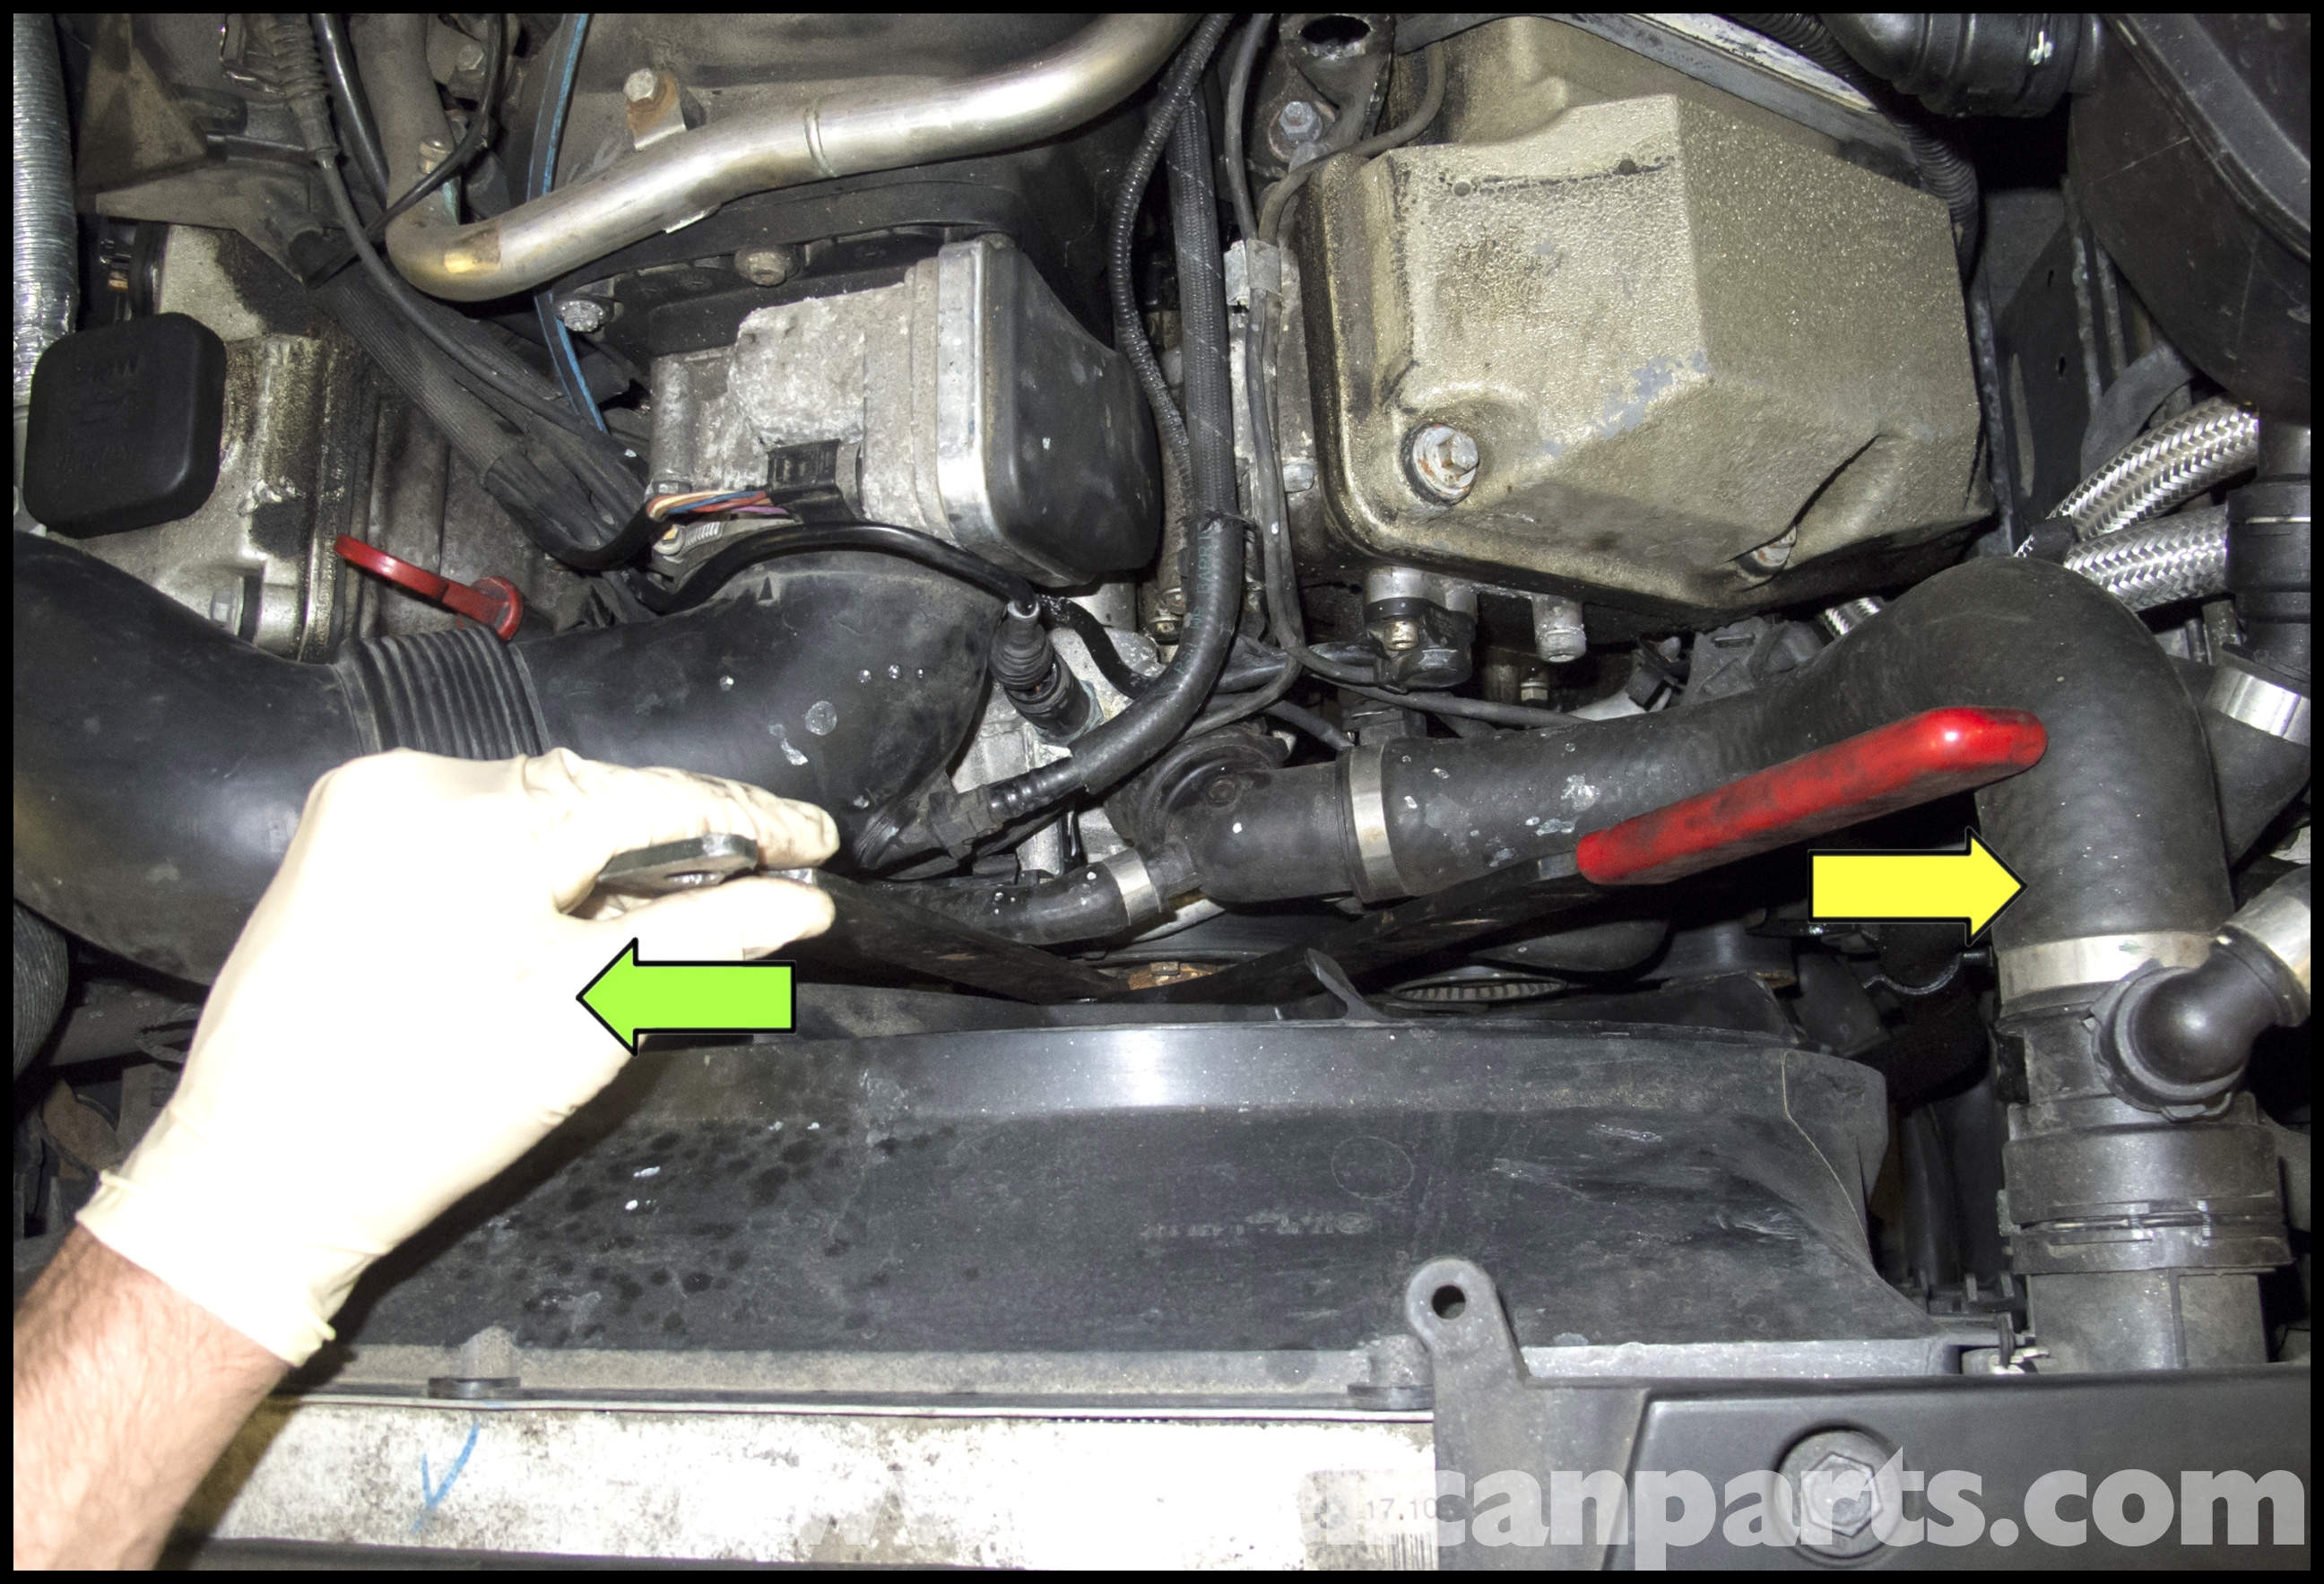 2005 Bmw X5 Water Pump Replacement Lovely Bmw X5 Engine Cooling Fan Replacement E53 2000 2006